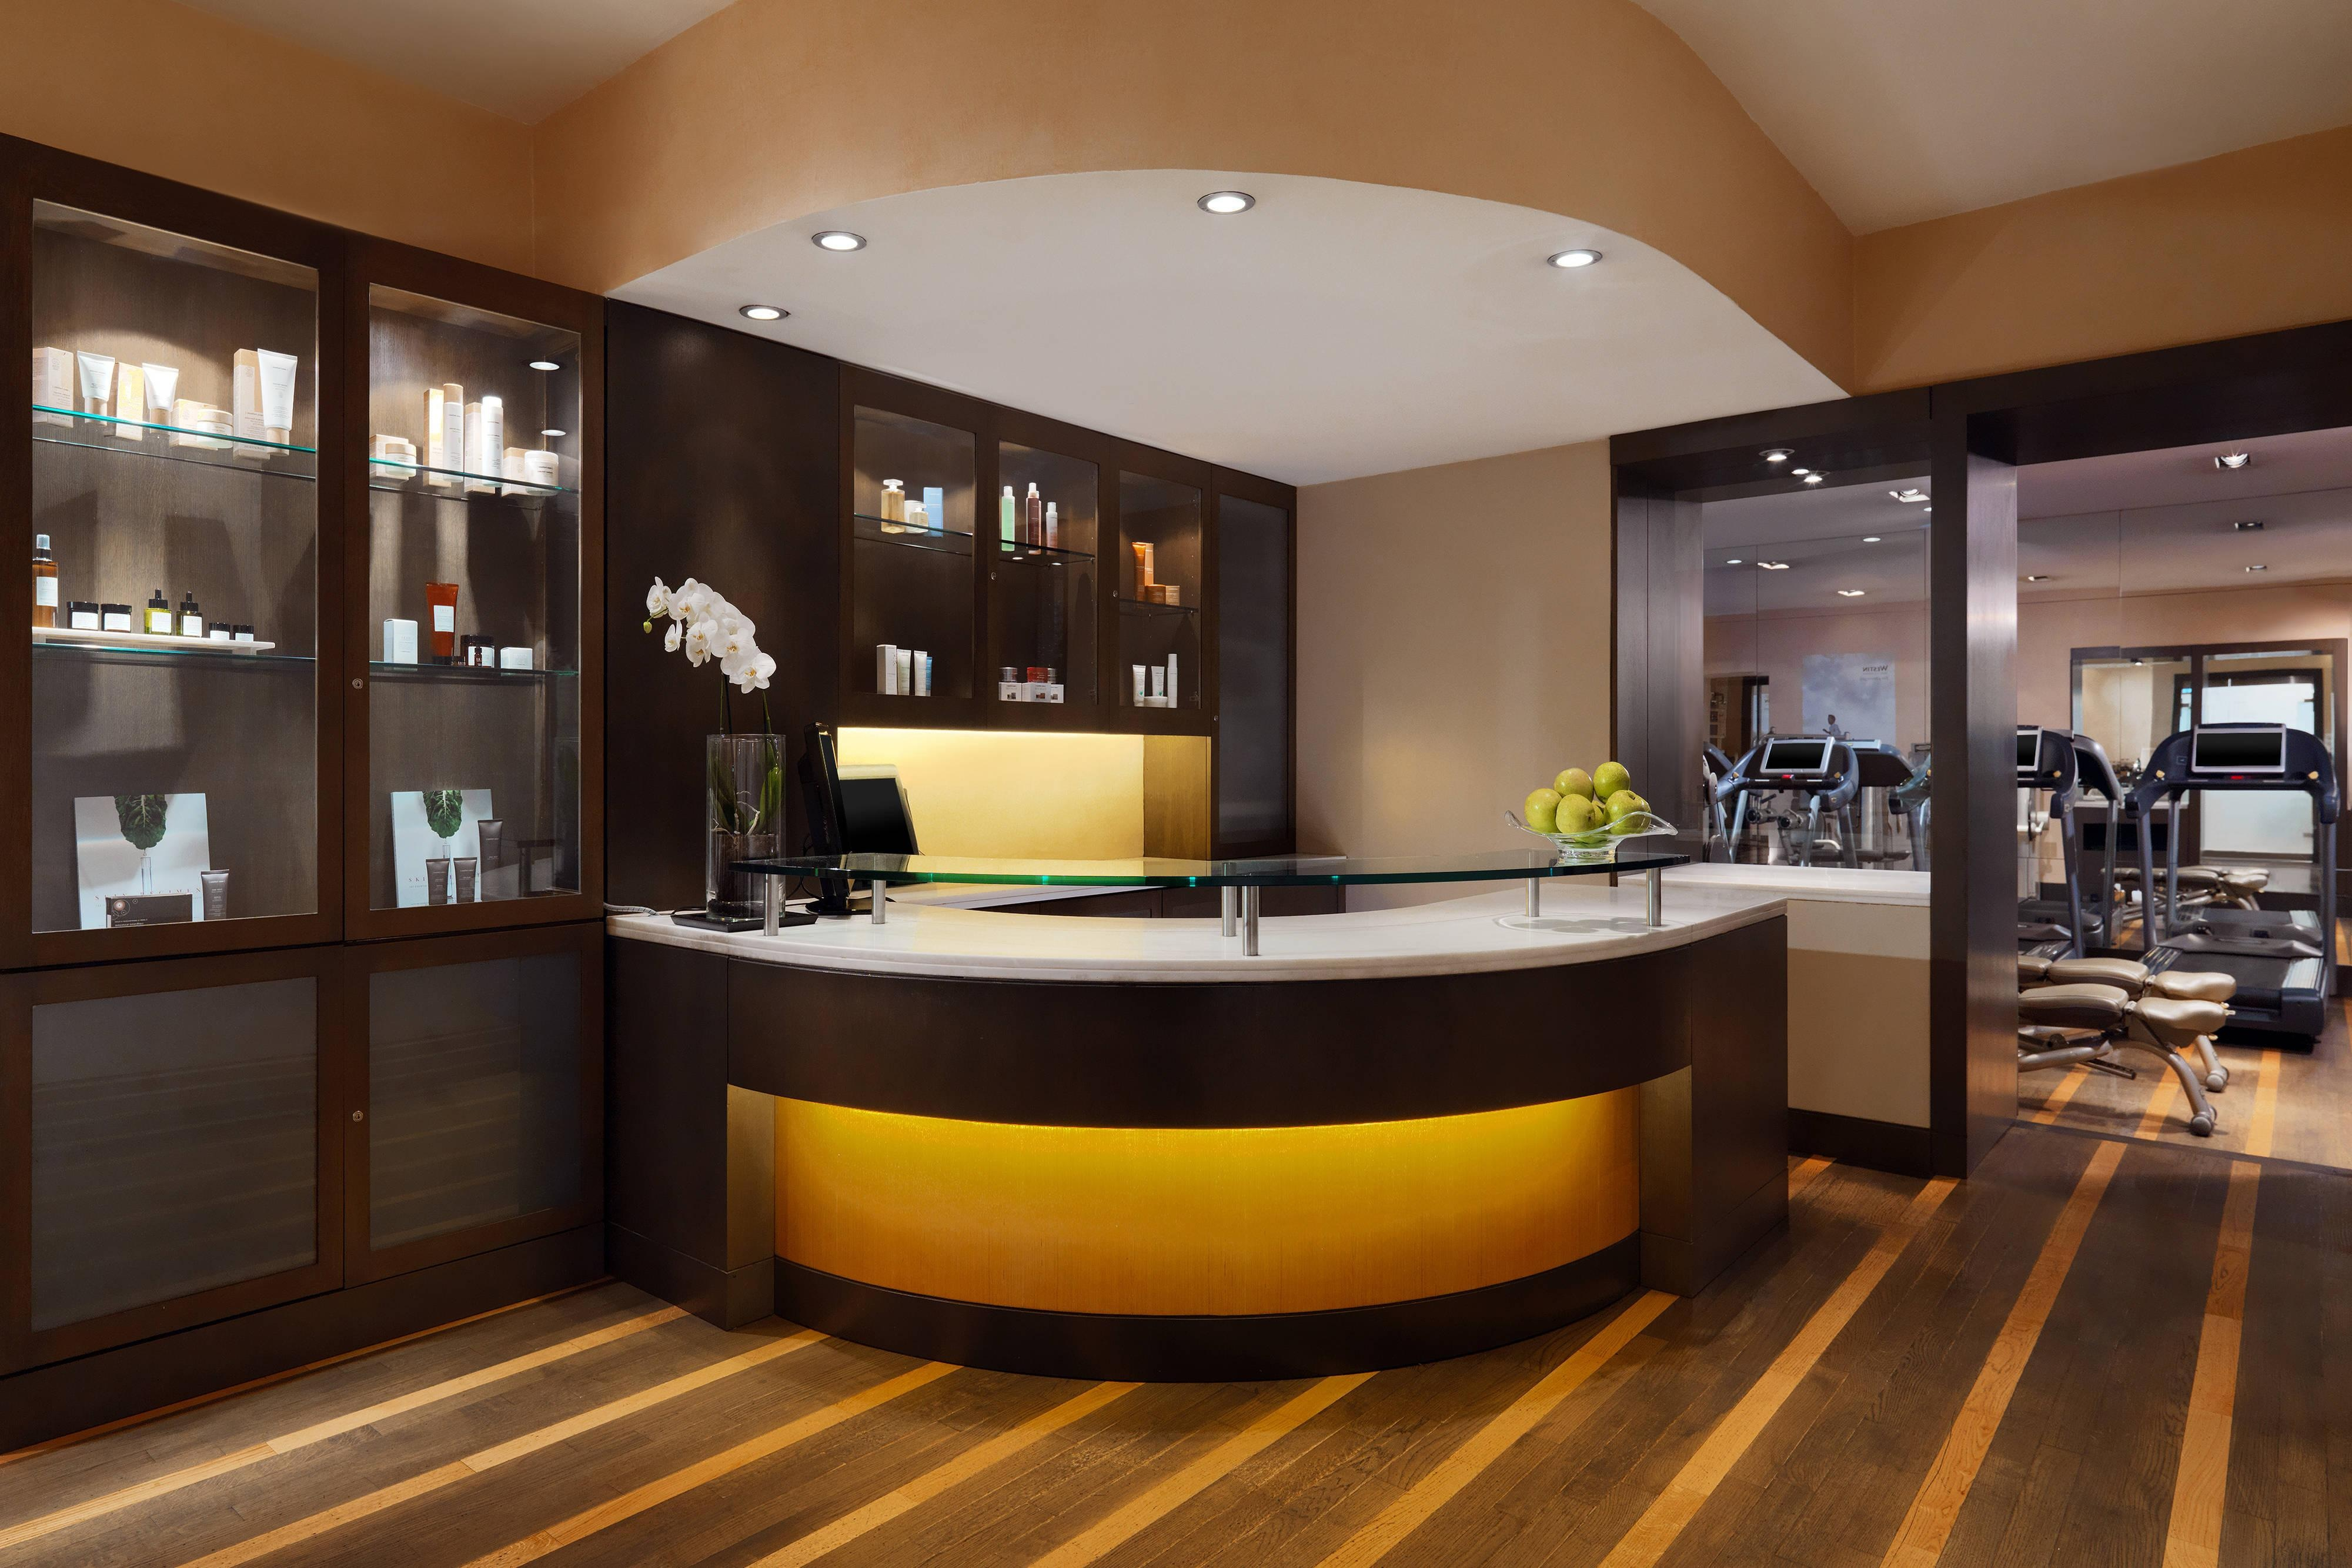 Westin Workout & Beauty SPAce by [comfort zone] - Reception